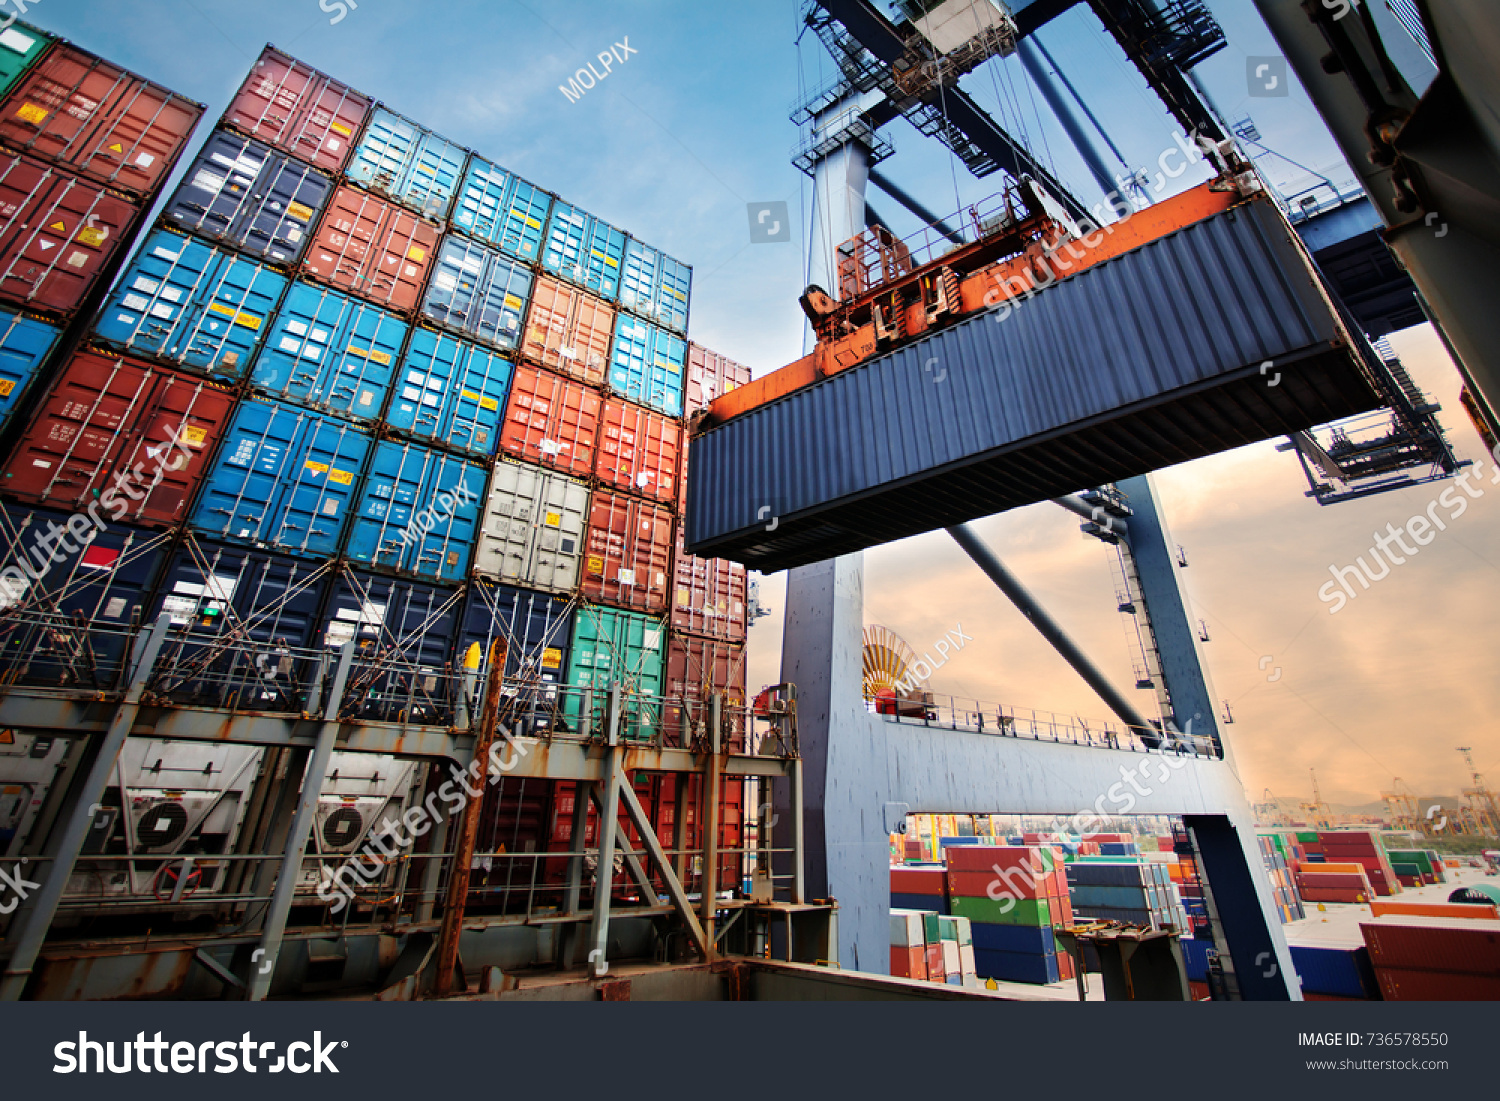 Container loading in a Cargo freight ship with industrial crane. Container ship in import and export business logistic company. Industry and Transportation concept.